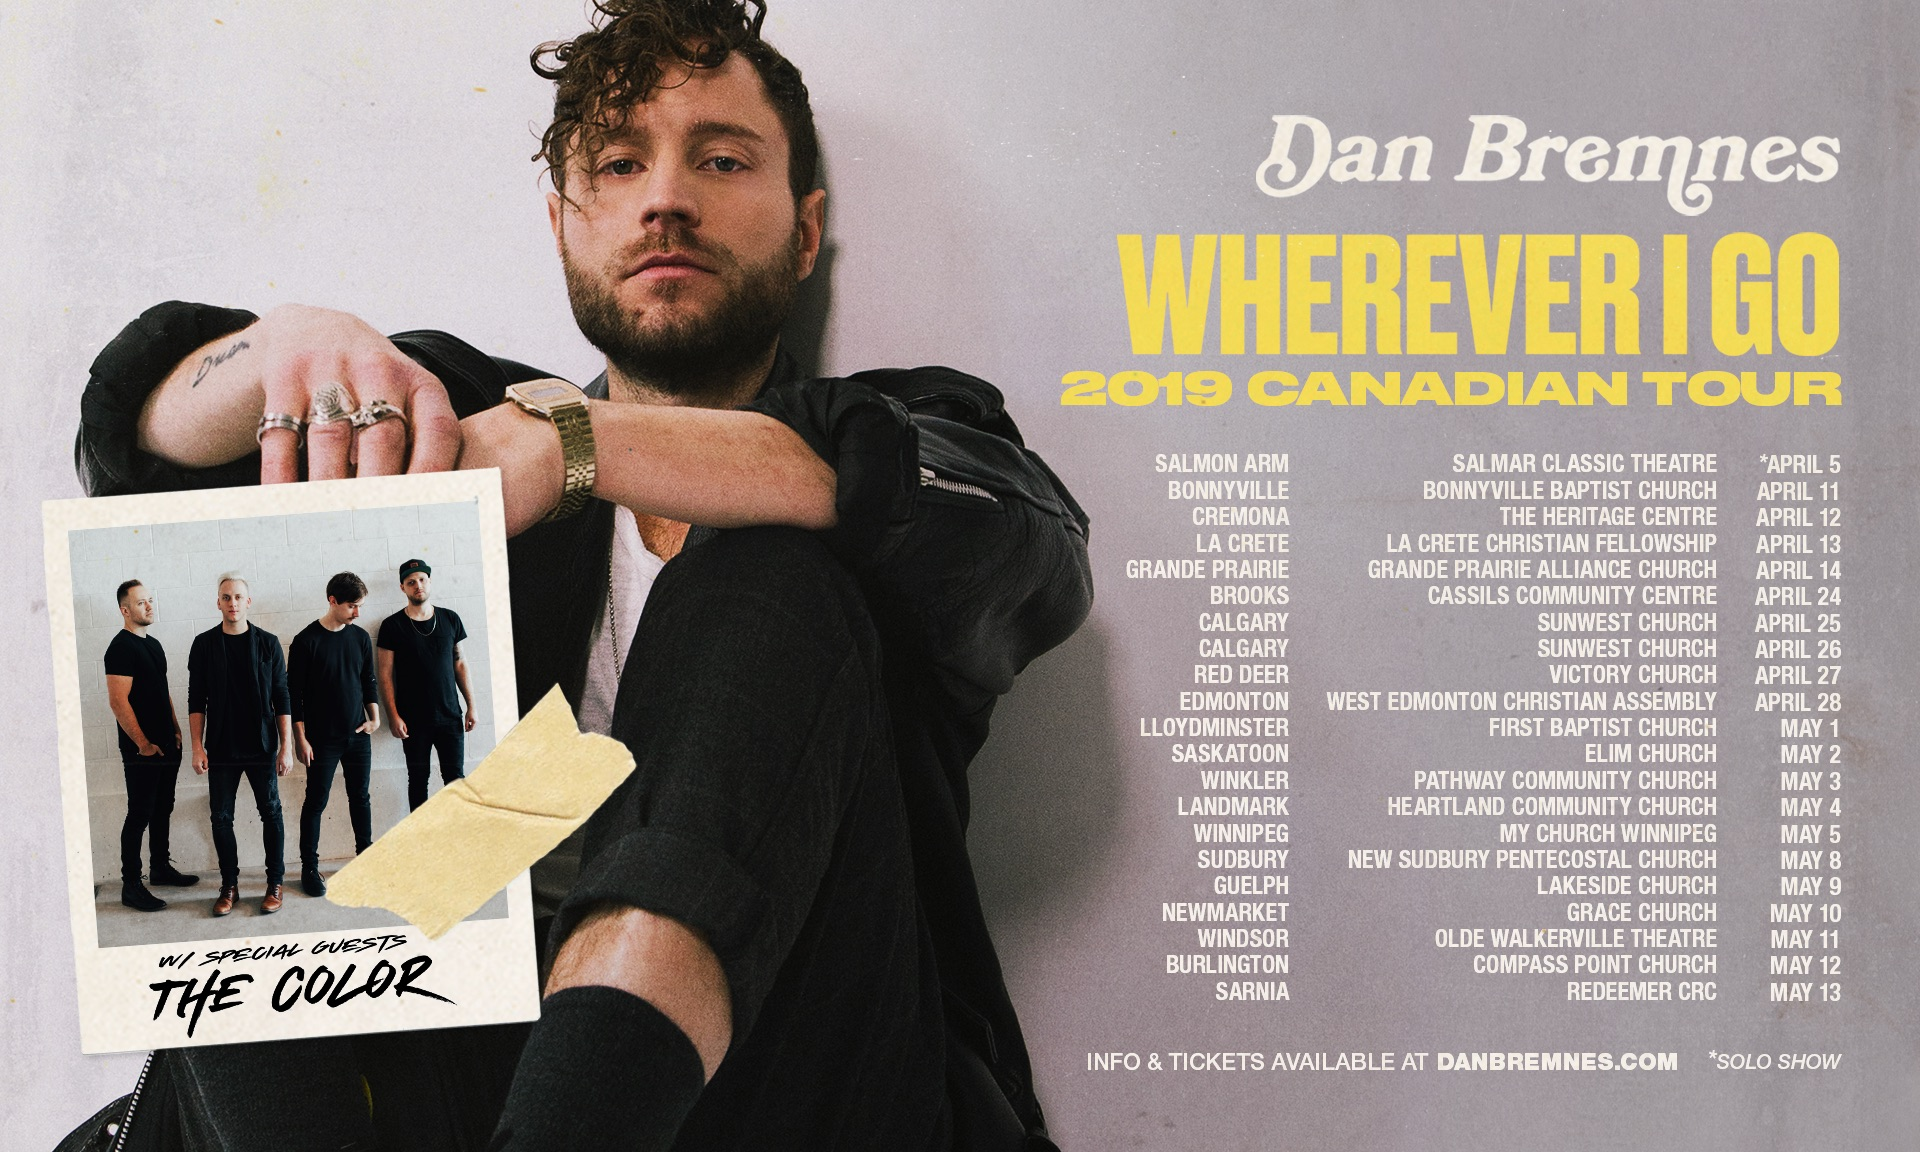 Tickets for Dan Bremnes, Wherever I Go Tour with The Color in Sarnia from BuzzTix